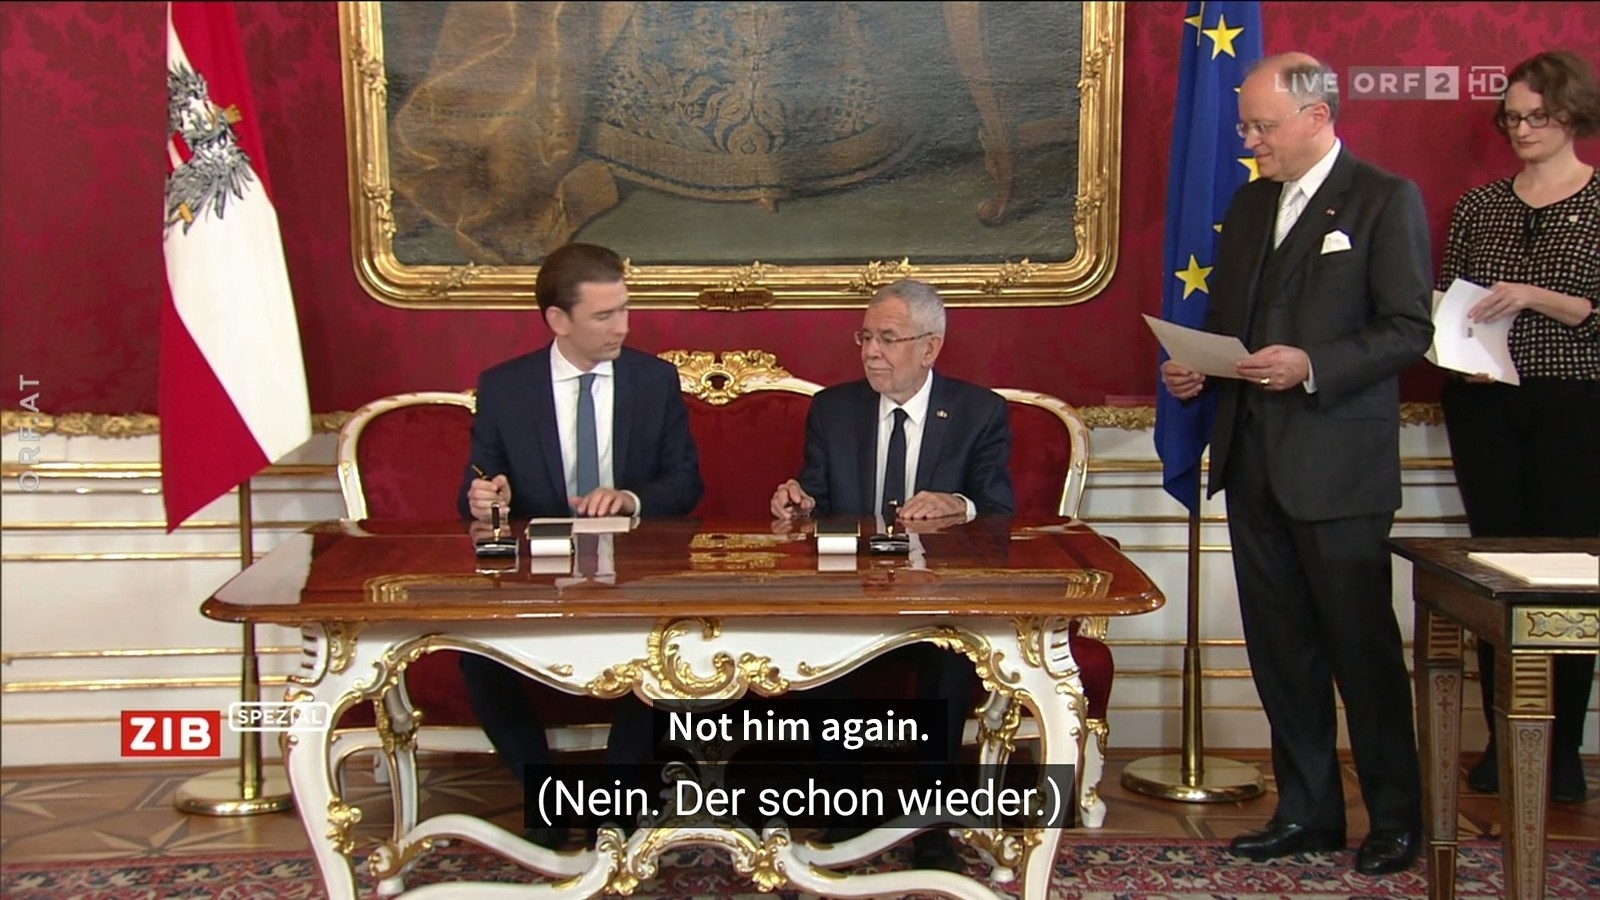 Subtitles mix-up turns Austrian cabinet inauguration into soap opera